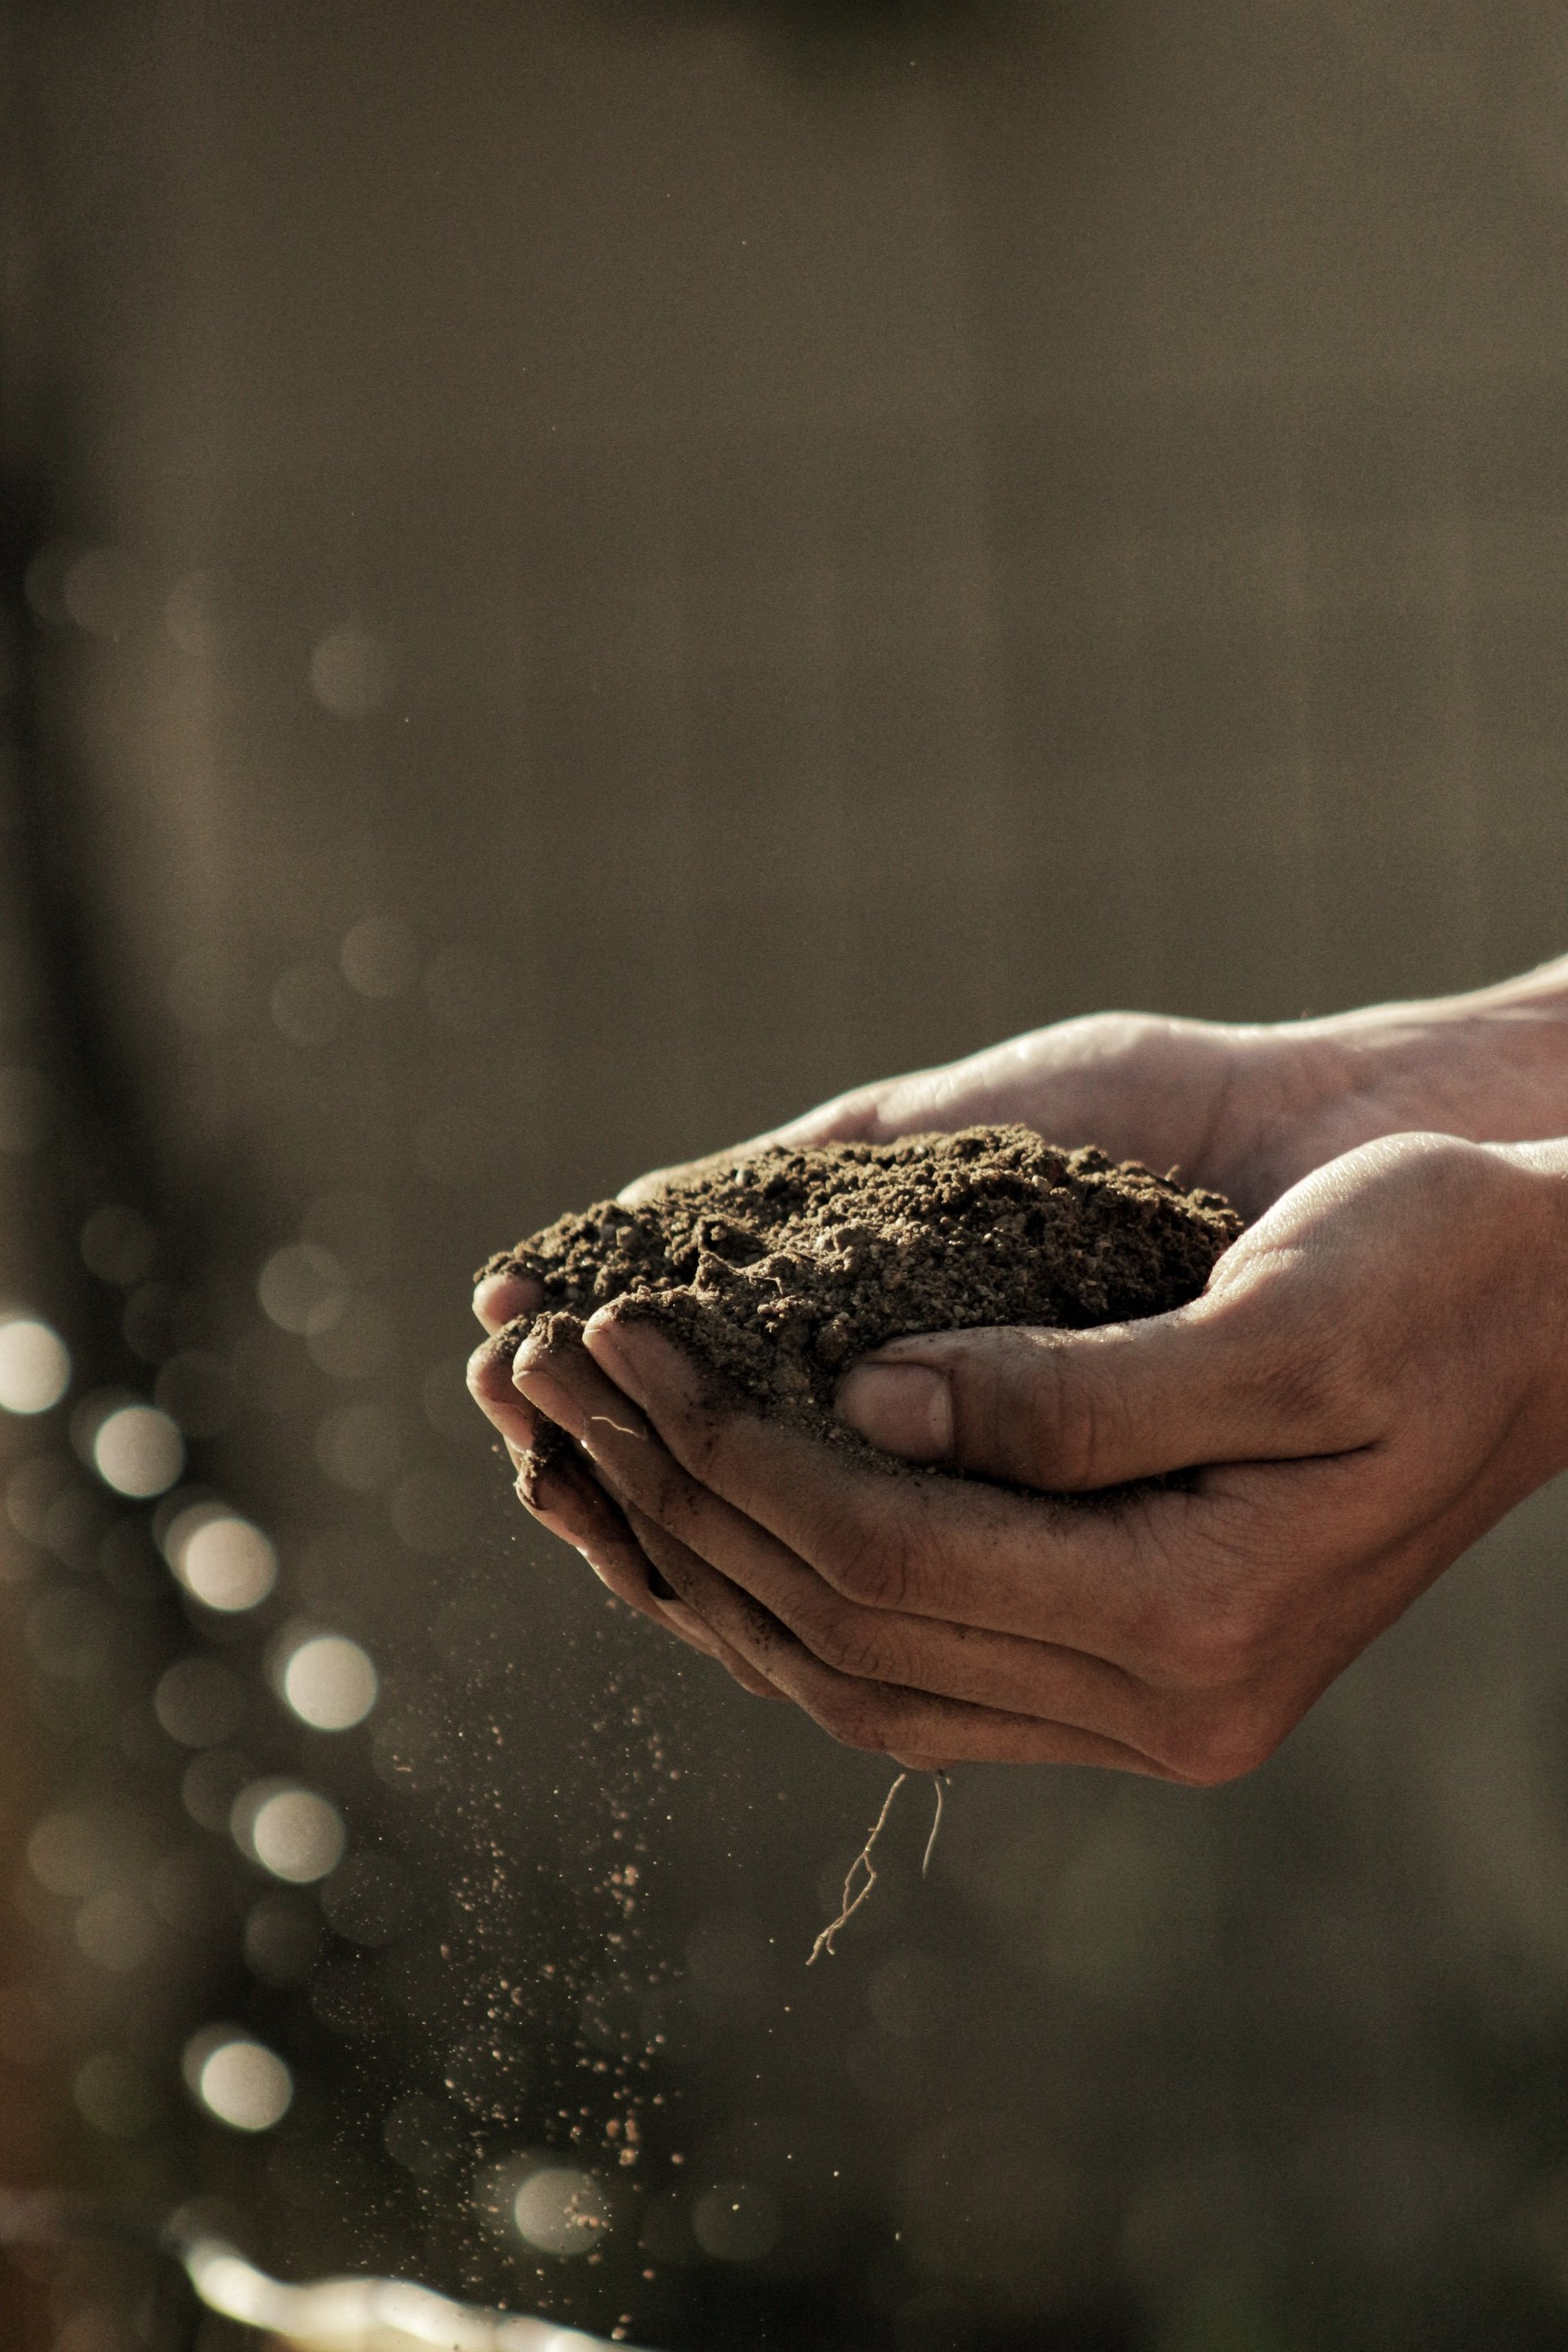 A handful of dirt after a successful dirt delivery in Cabarrus County, NC